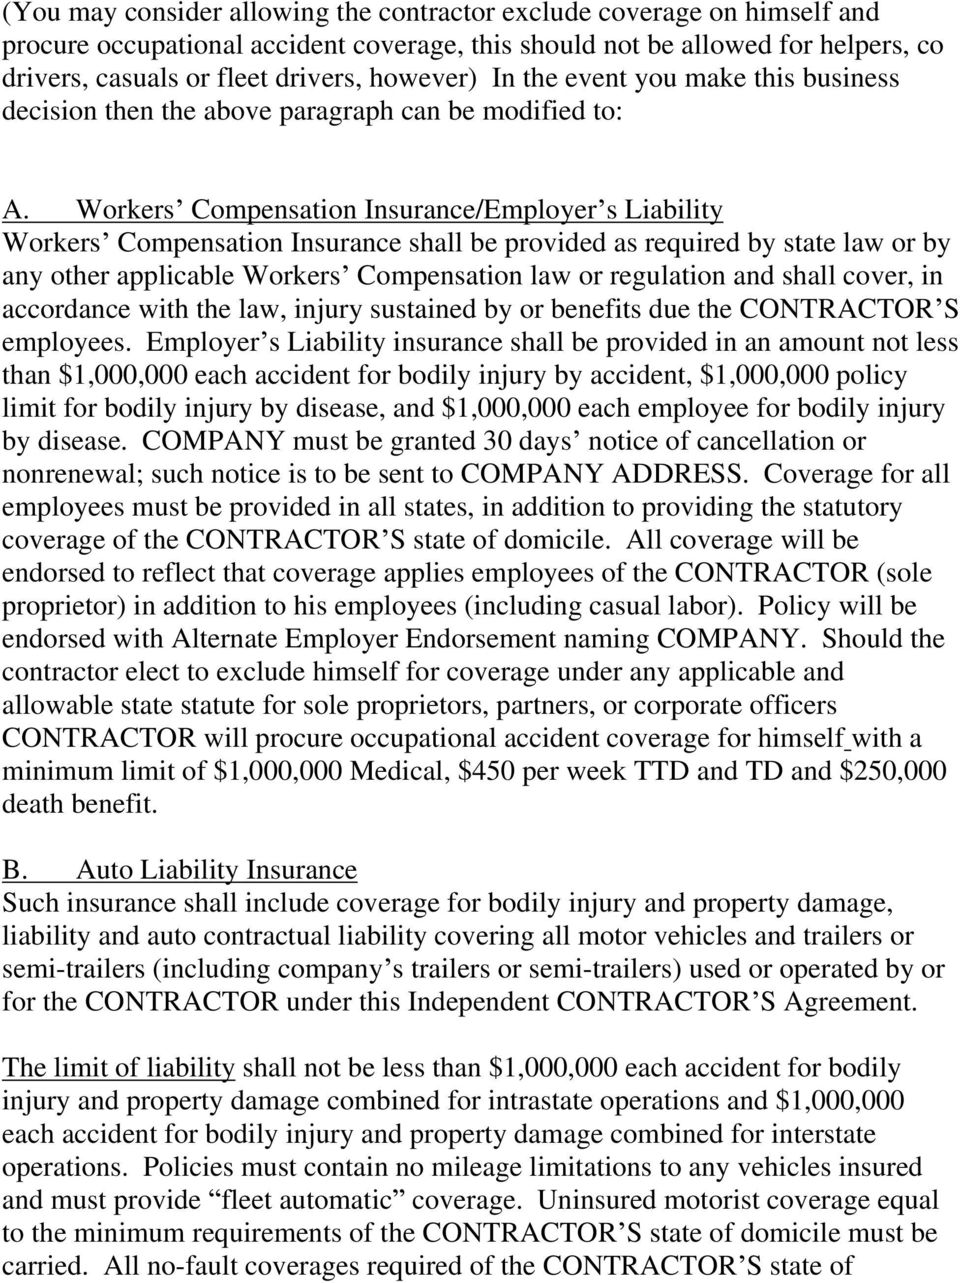 Workers Compensation Insurance/Employer s Liability Workers Compensation Insurance shall be provided as required by state law or by any other applicable Workers Compensation law or regulation and